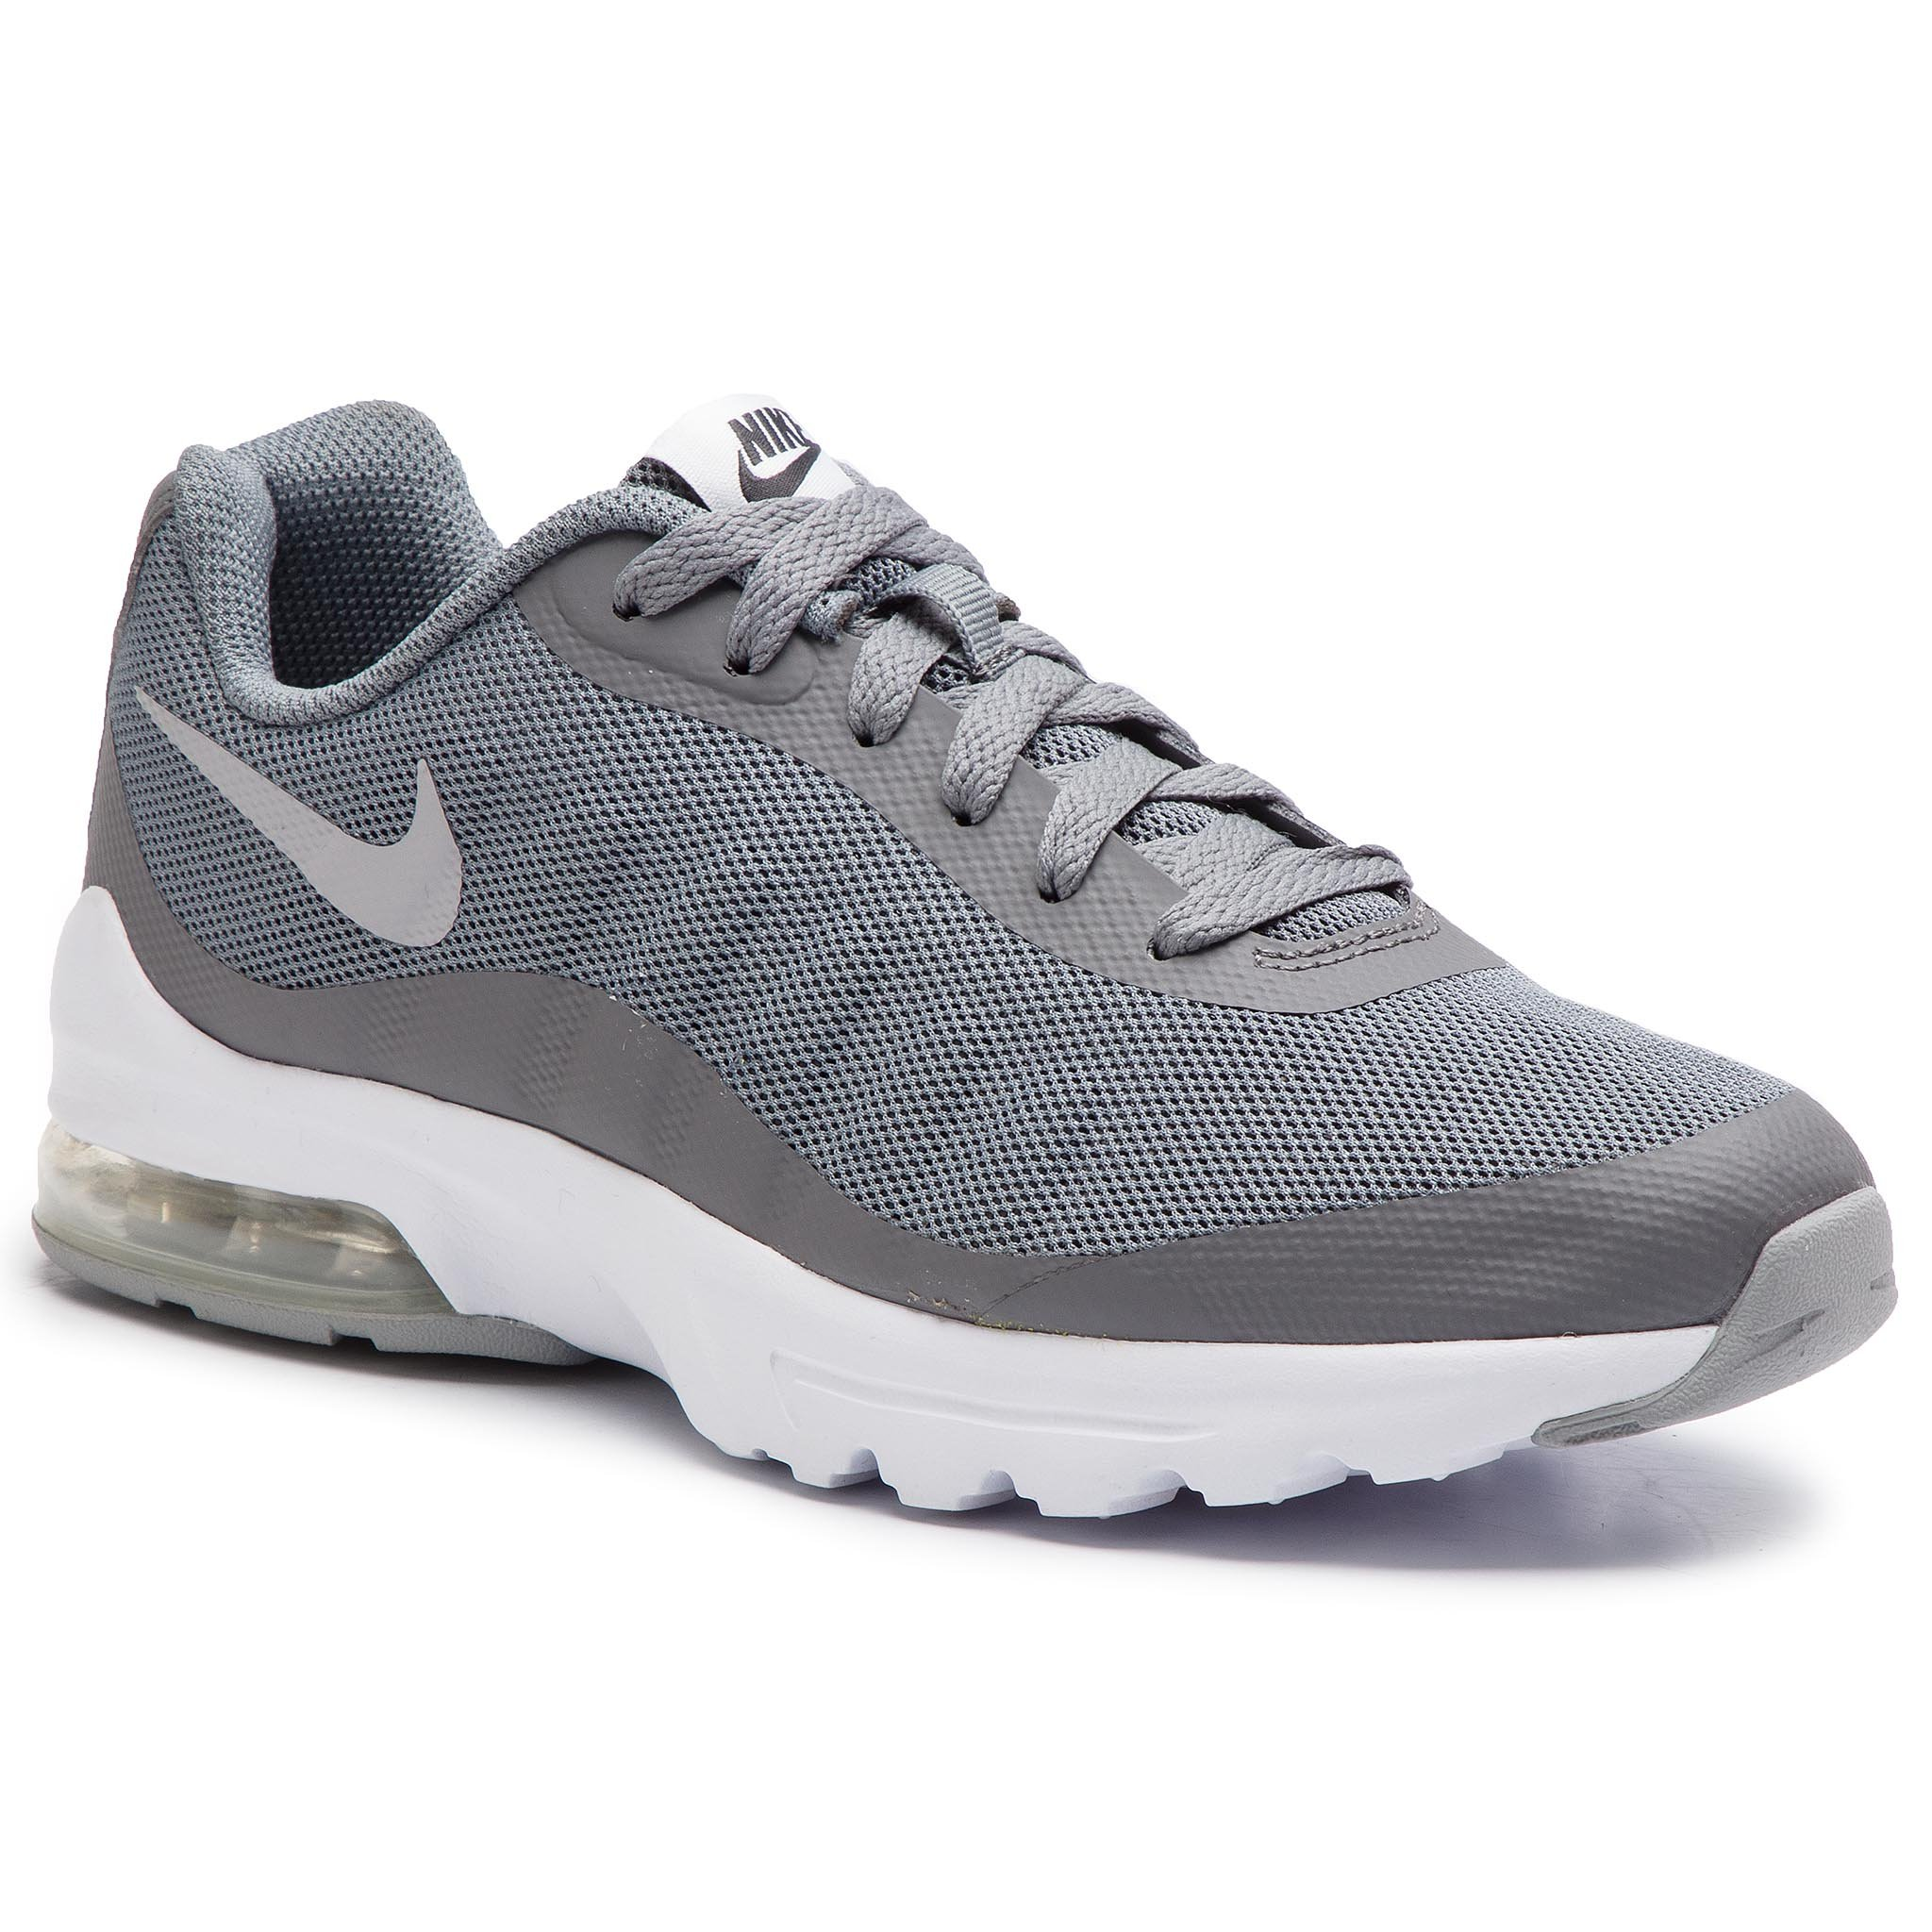 Buty NIKE – Air Max Invigor (GS) 749572 005 Cool Szare/Wolf Szare/Anthracite